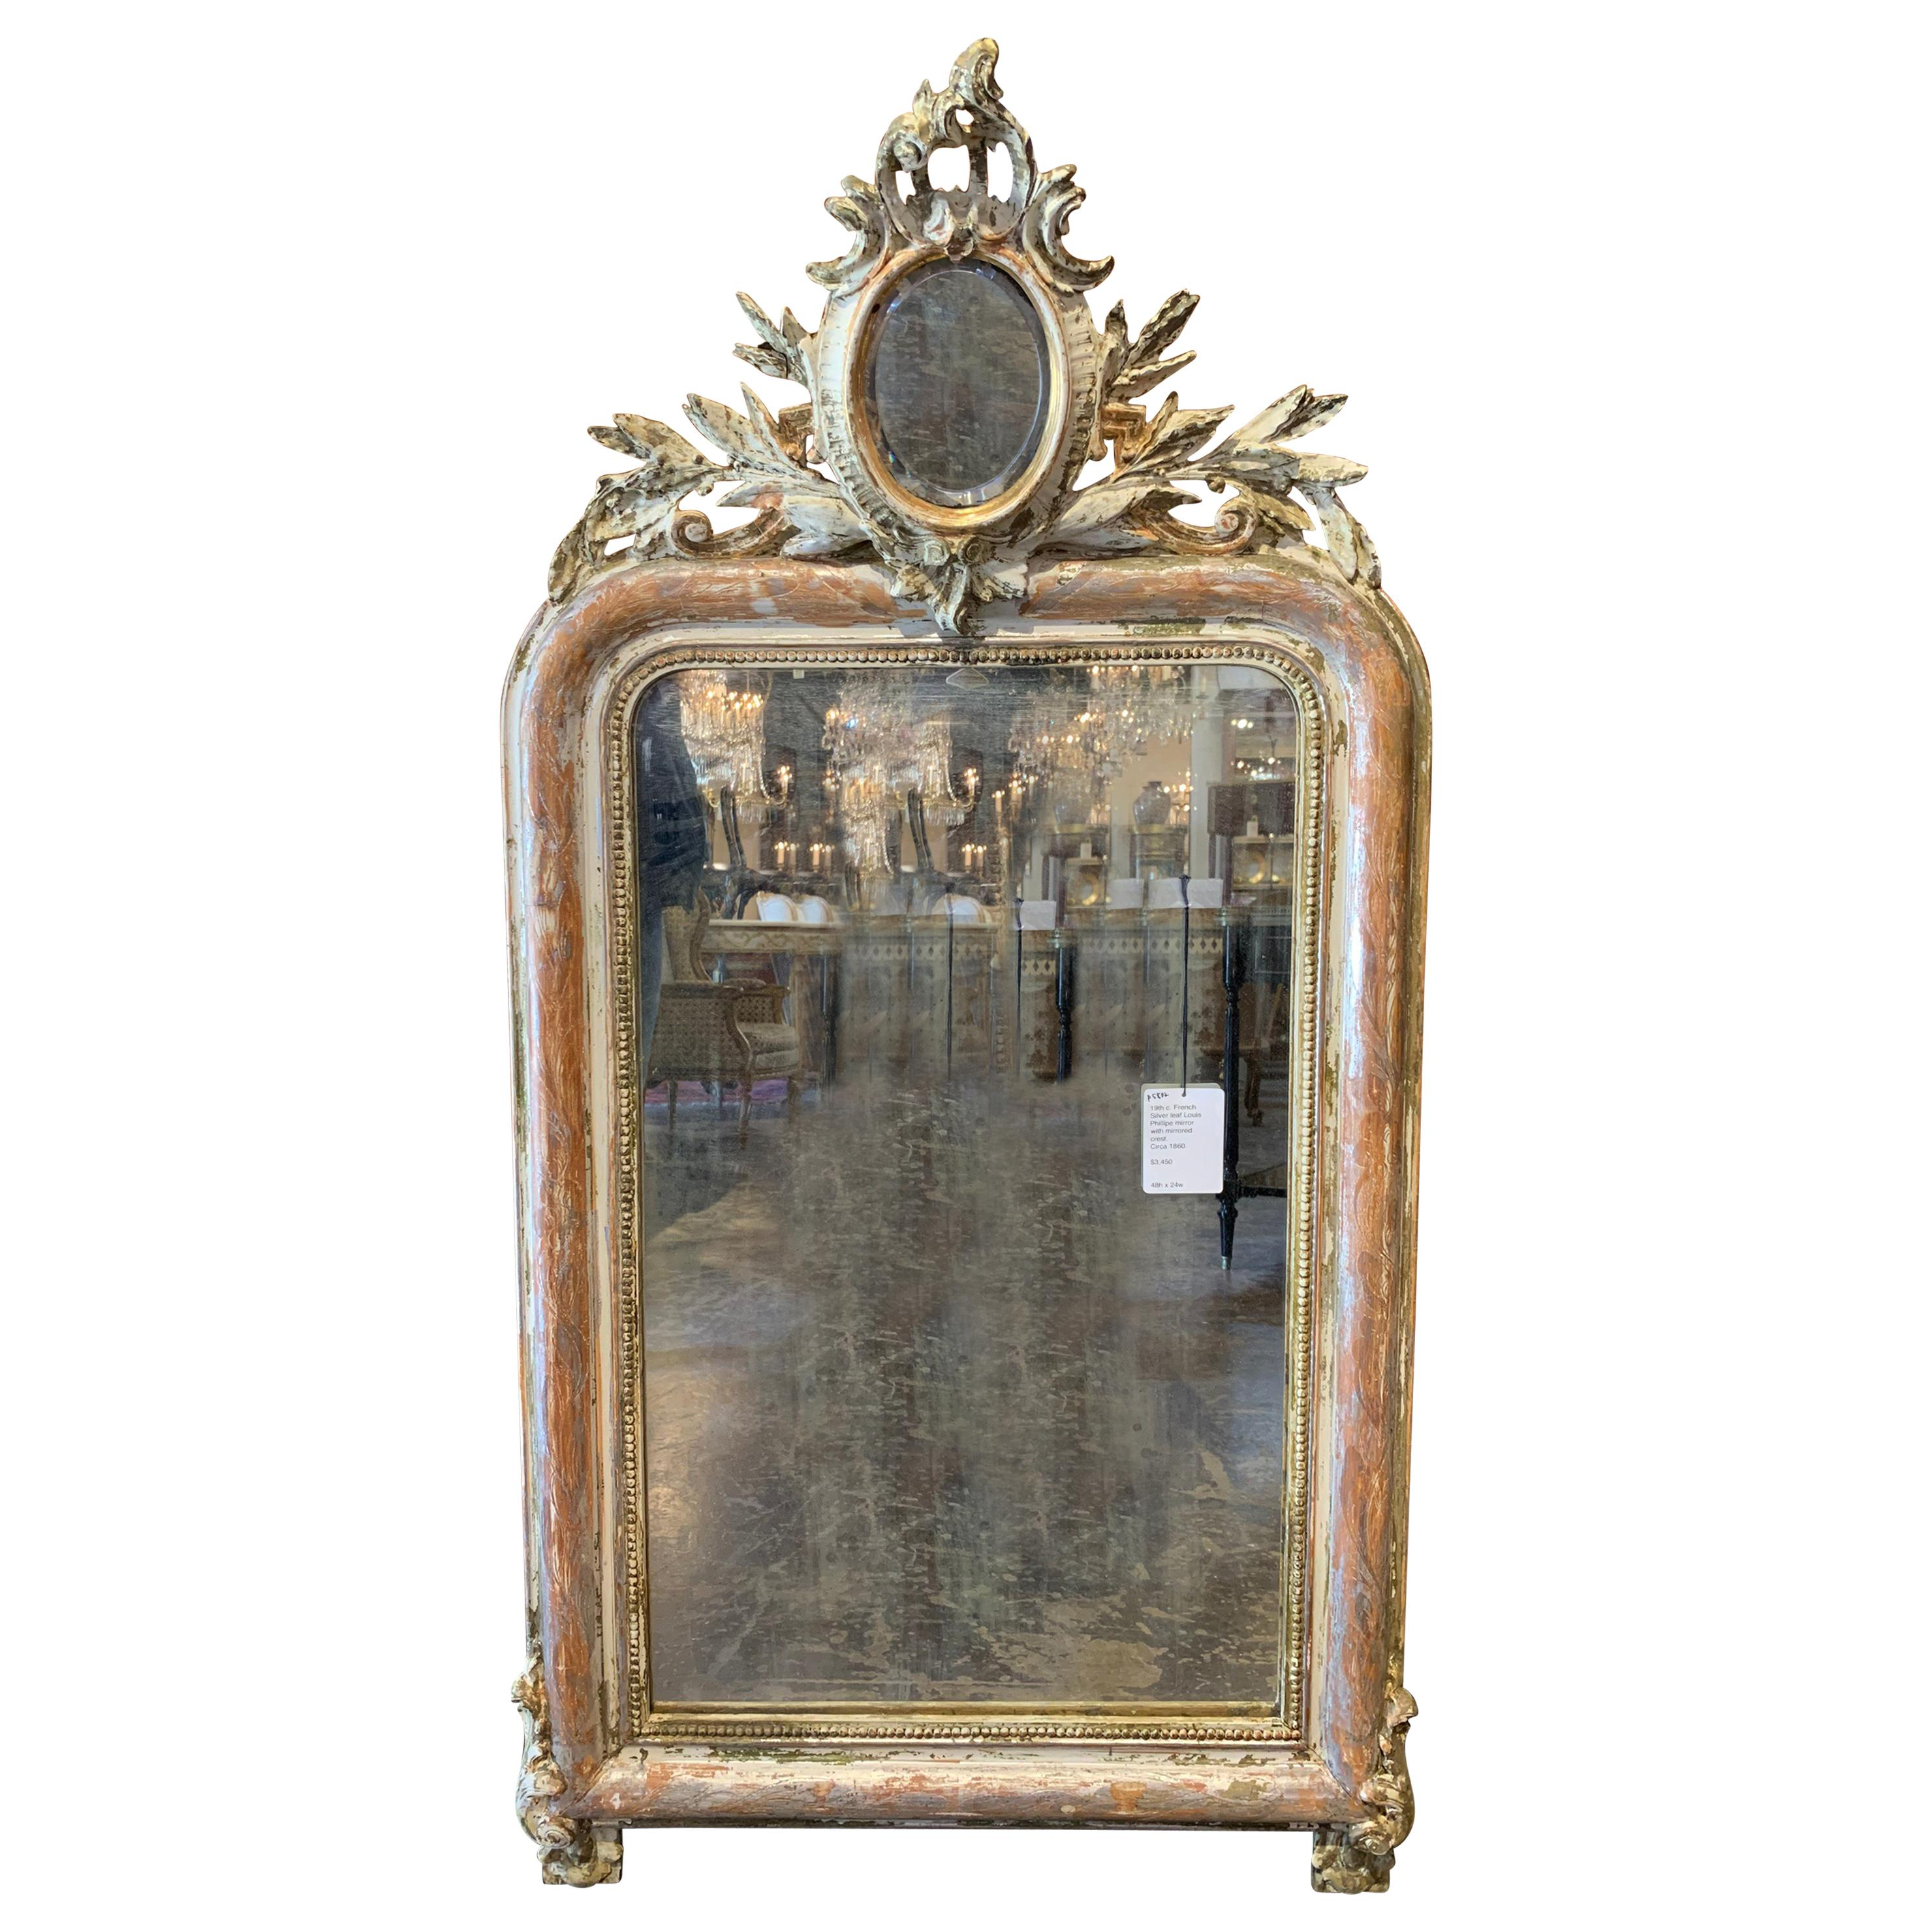 12208b84436 Antique and Vintage Mirrors - 15